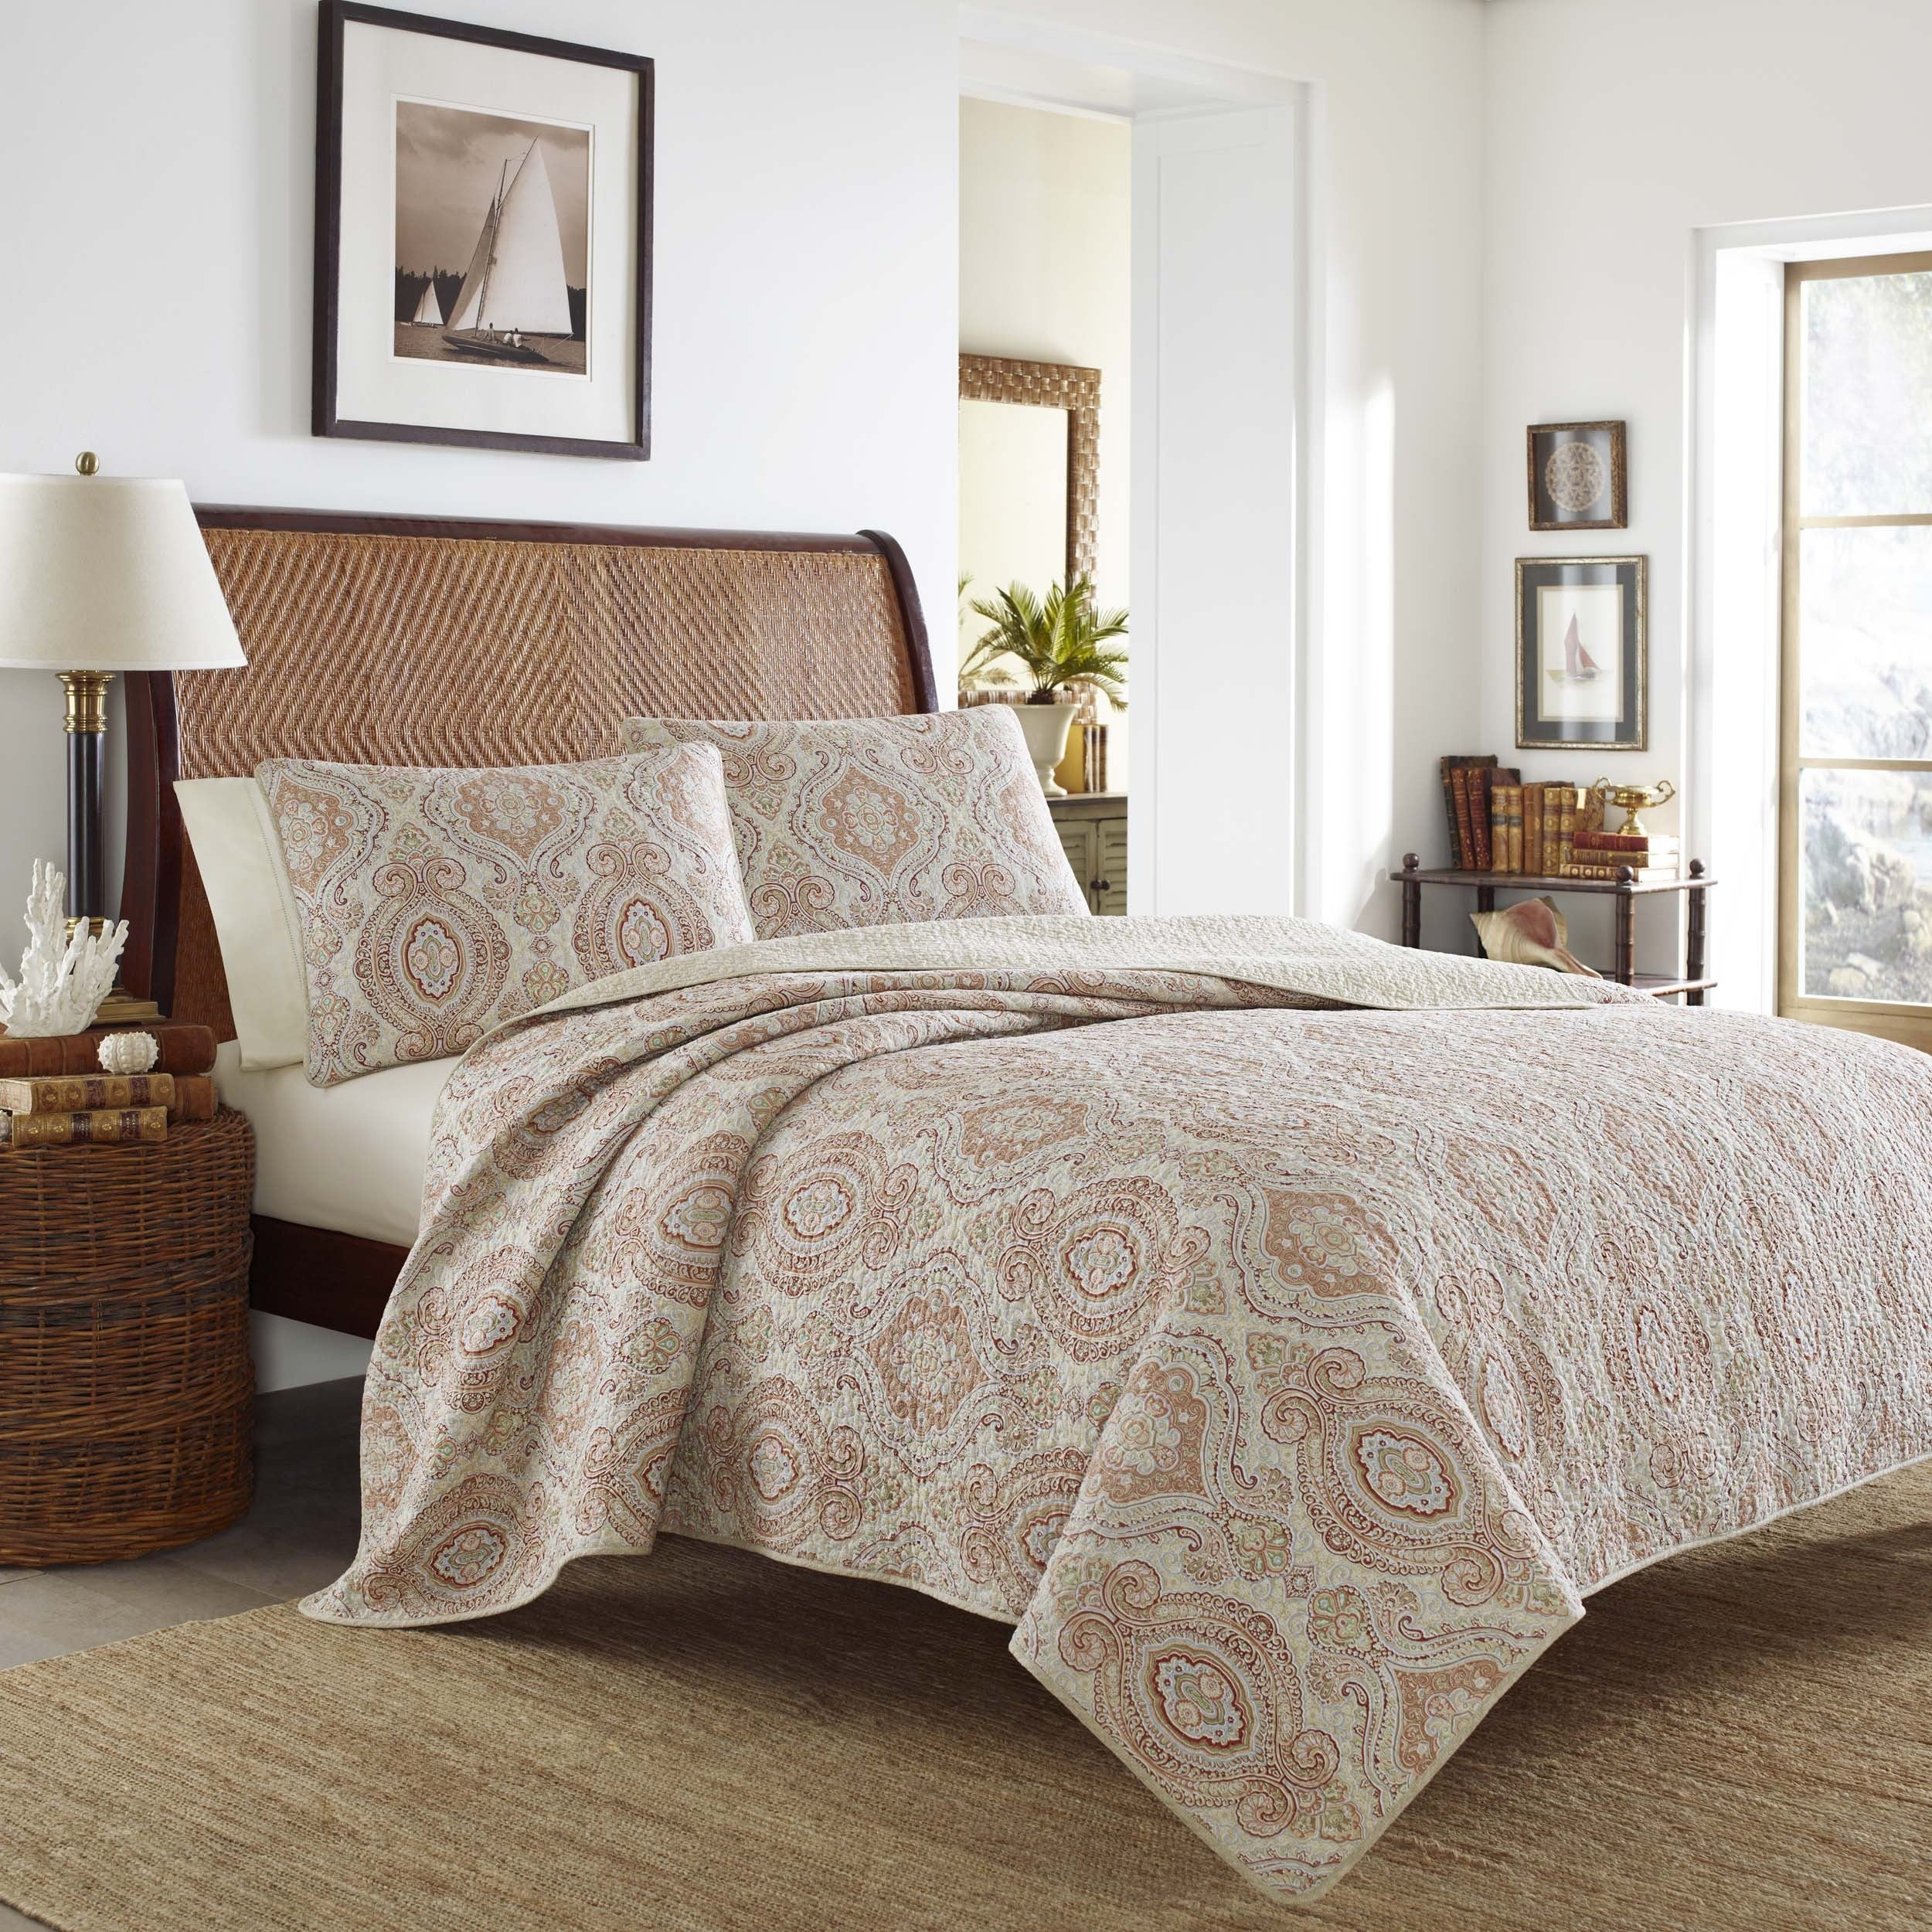 set bahama p palms king tropical by comforter bedding away tommy pear